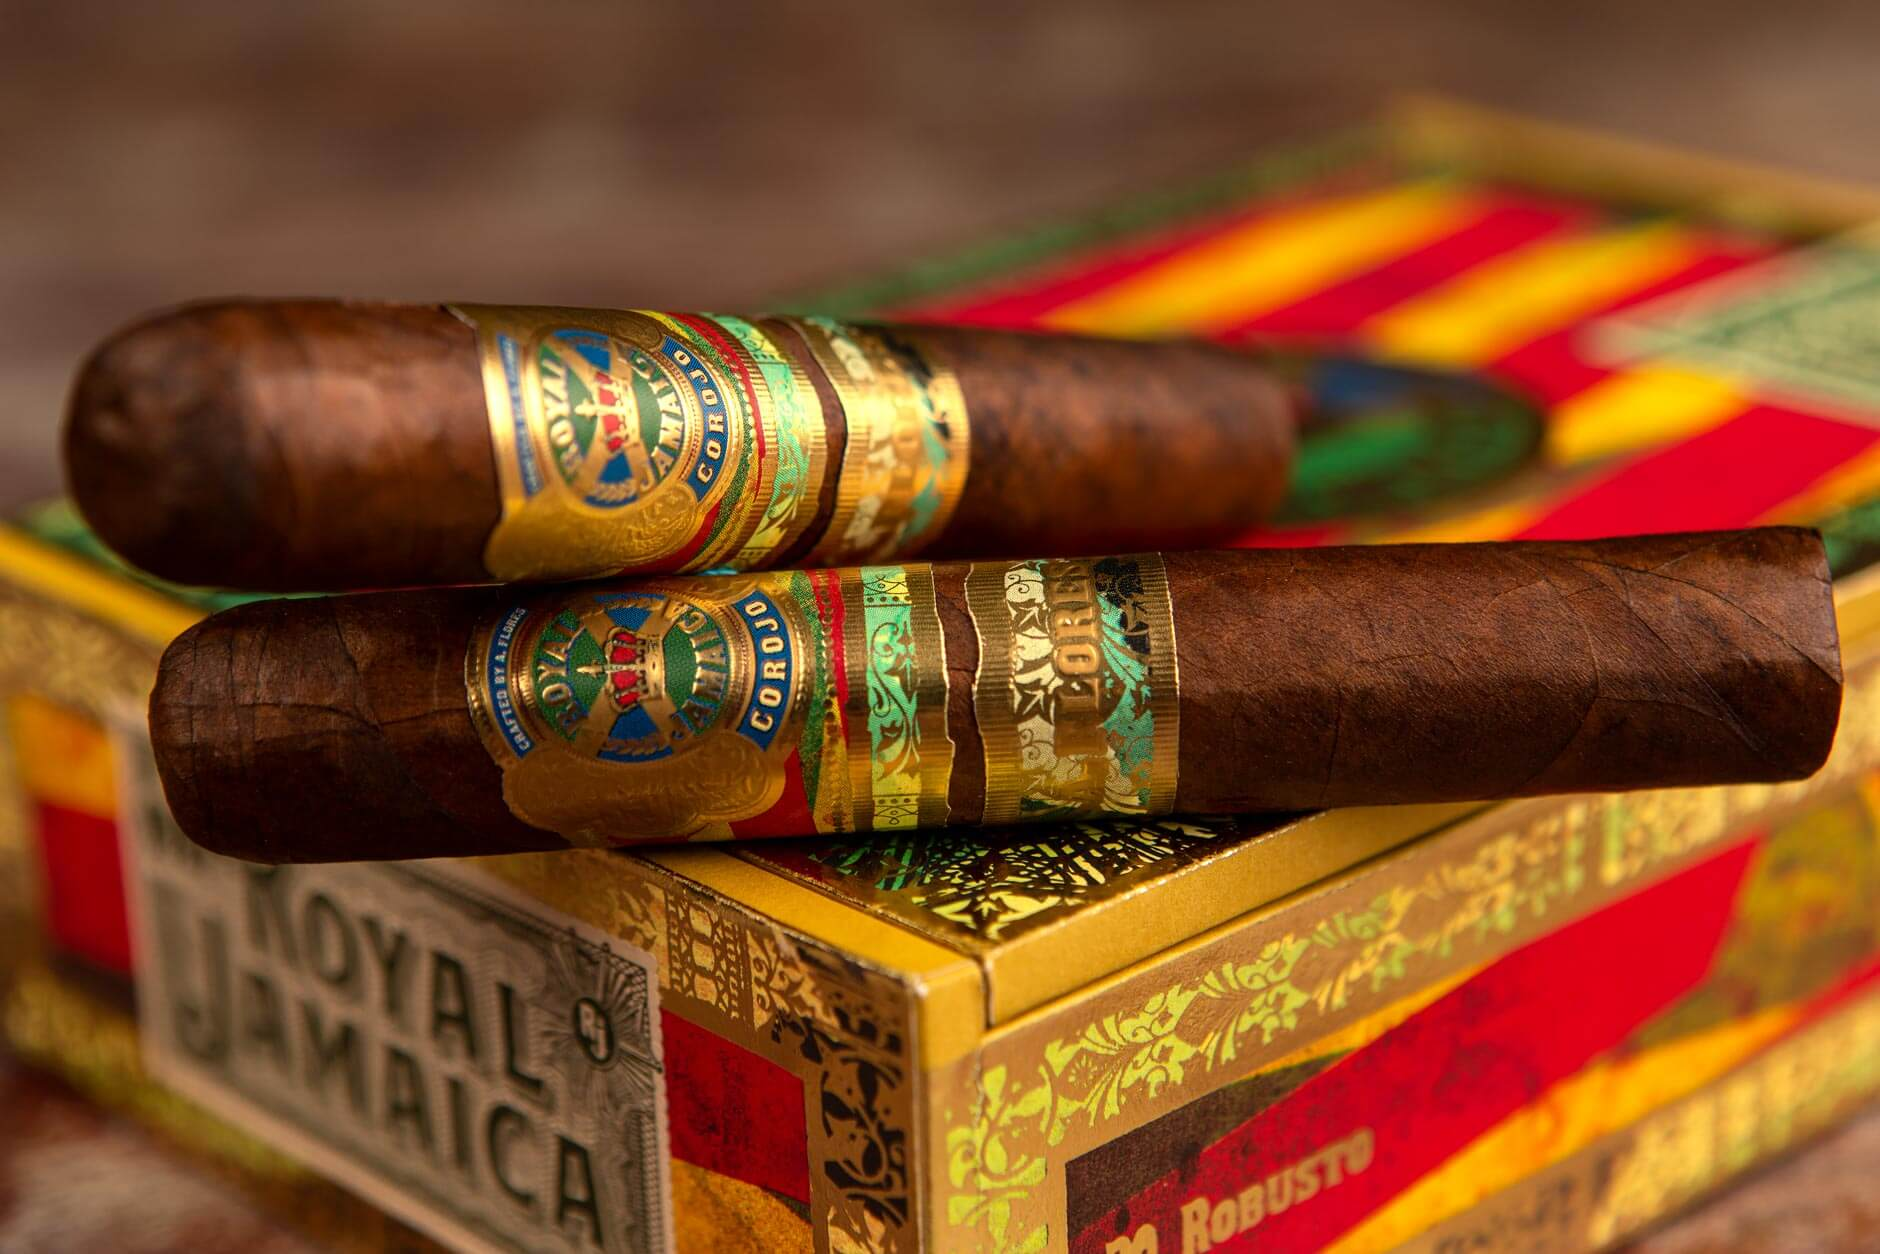 Cigar News: Royal Jamaica Cigars Come Back as Casa de Montecristo Exclusive